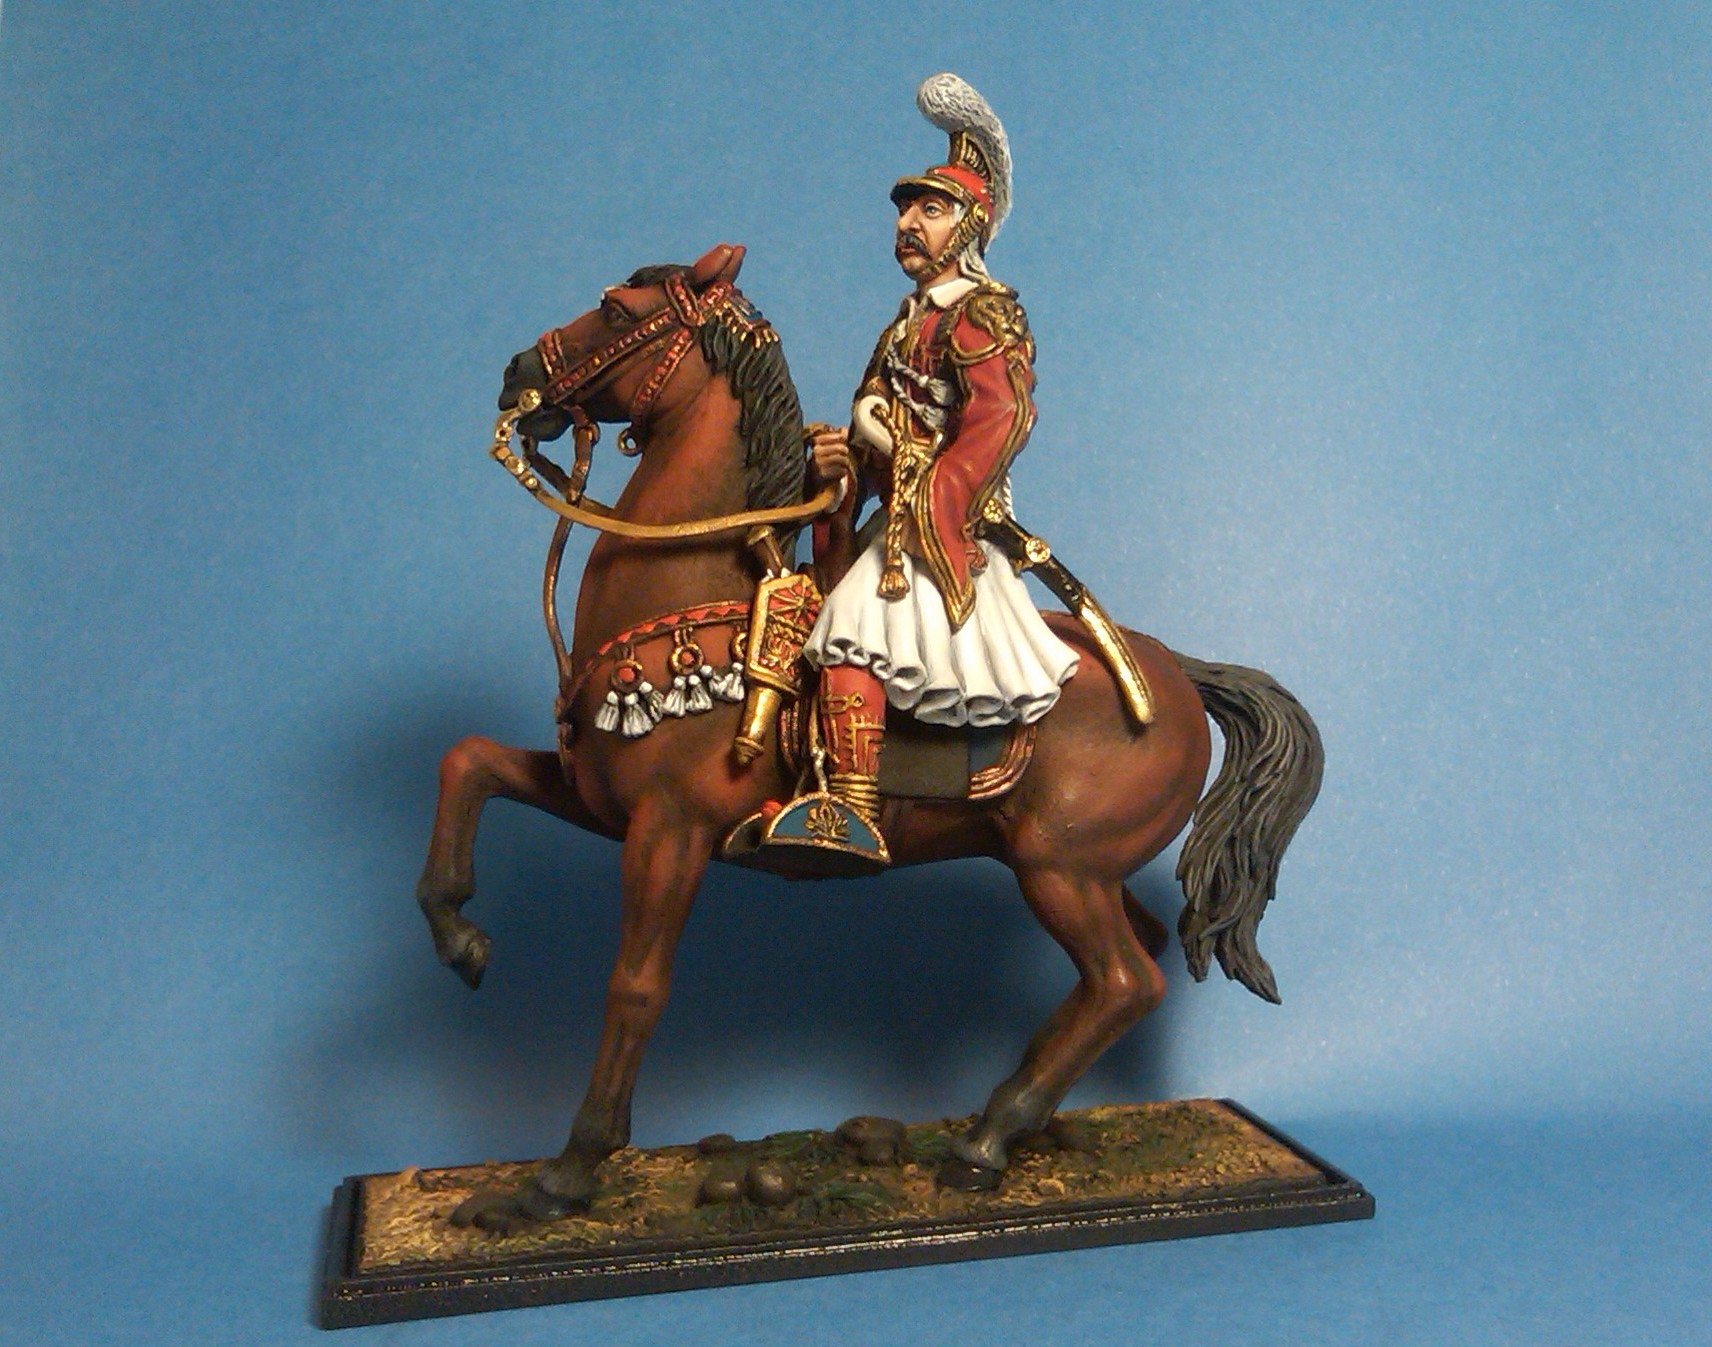 www.greekheroes.gr/miniatures-figures/54mm/Greek-revolution-1821-theodoros-kolokotronis/